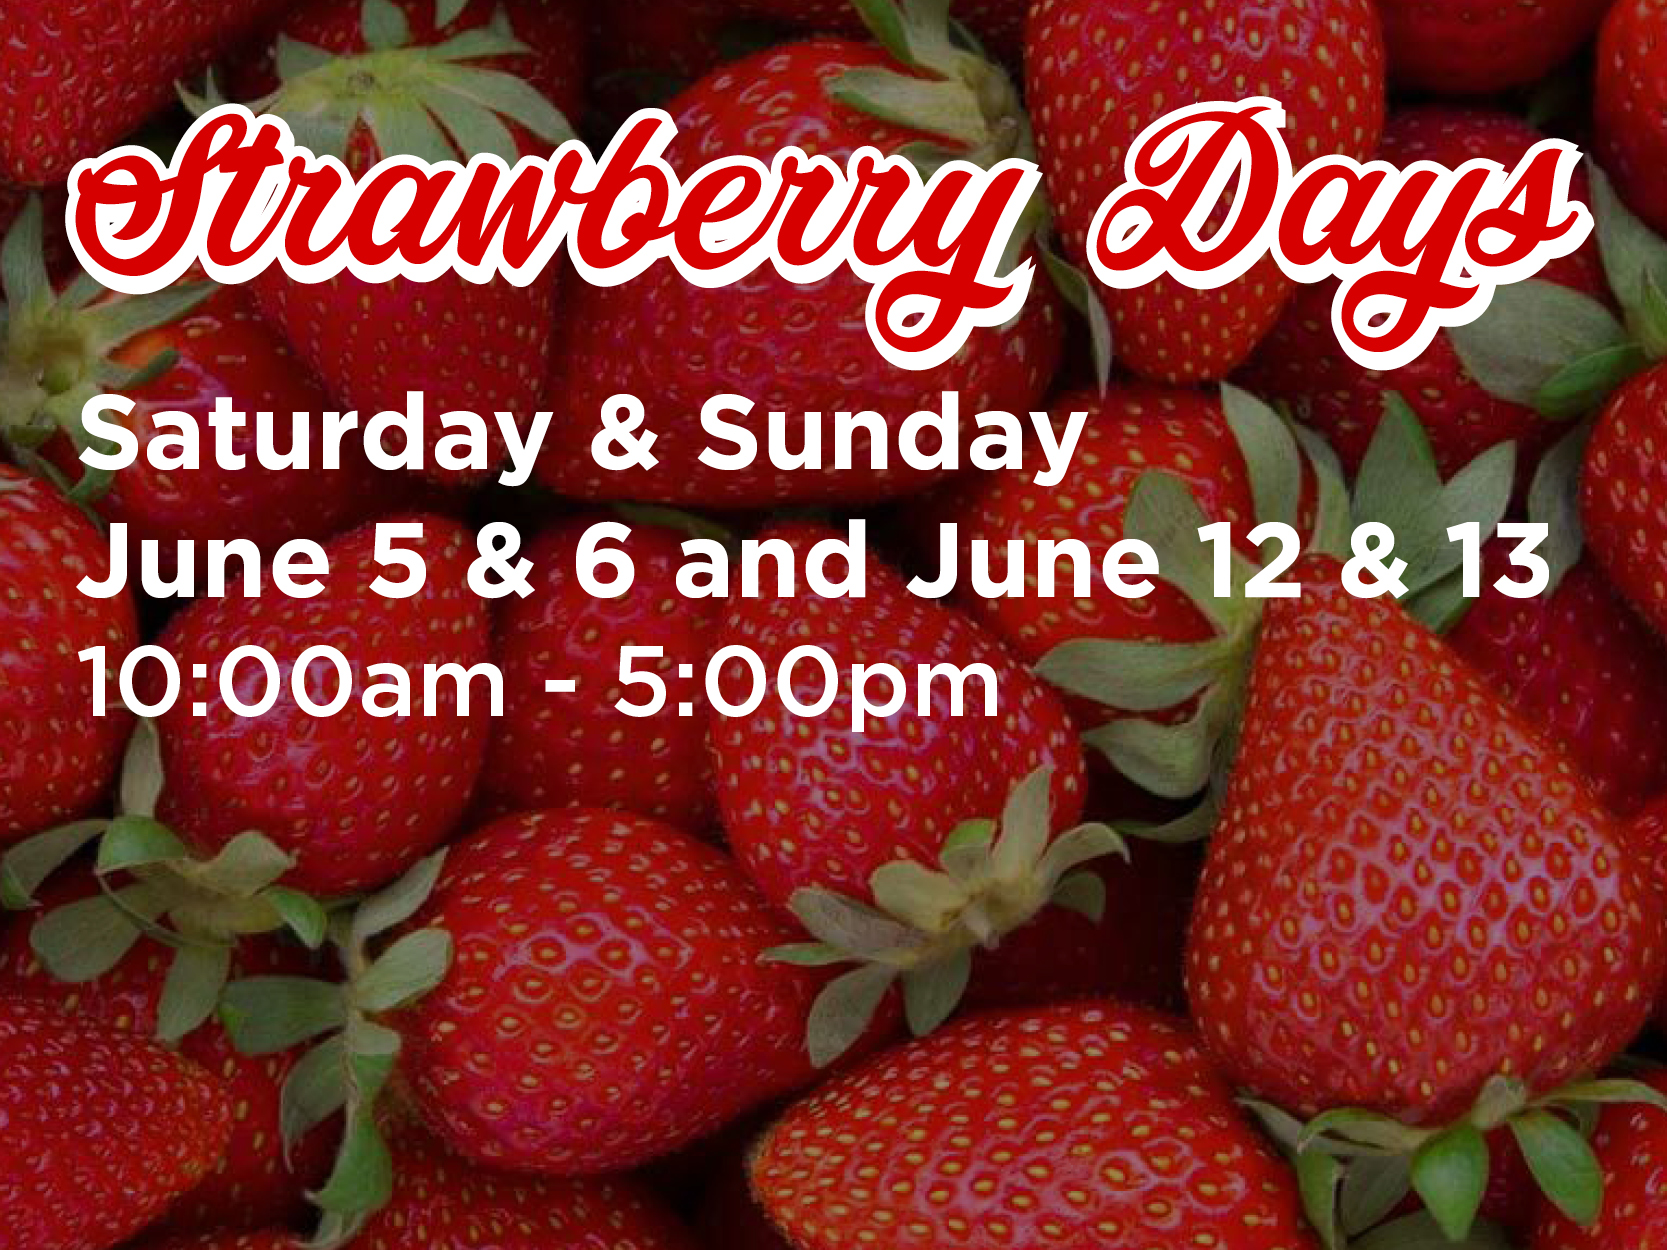 Strawberry Days at The Shoppes at The Shoppes at East Wind